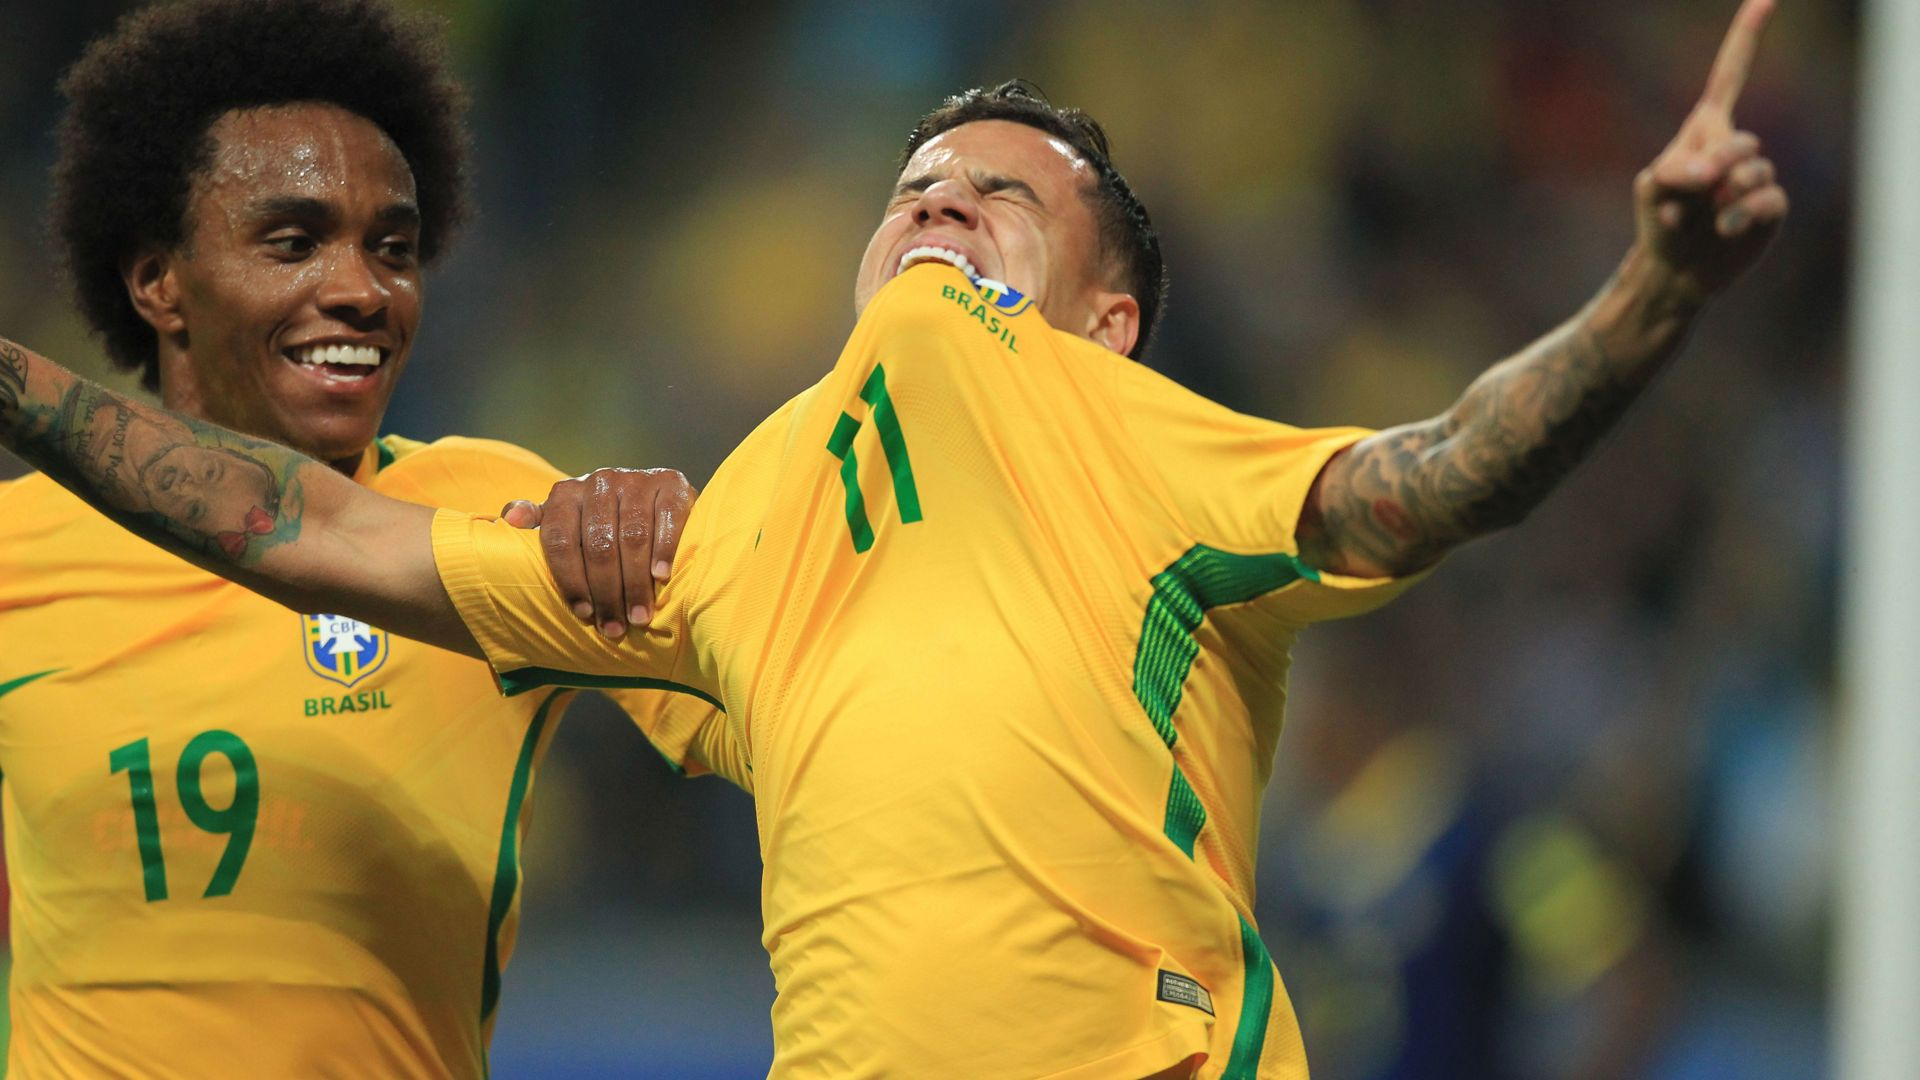 Willian Coutinho Brazil Ecuador Eliminatorias 2018 31082017